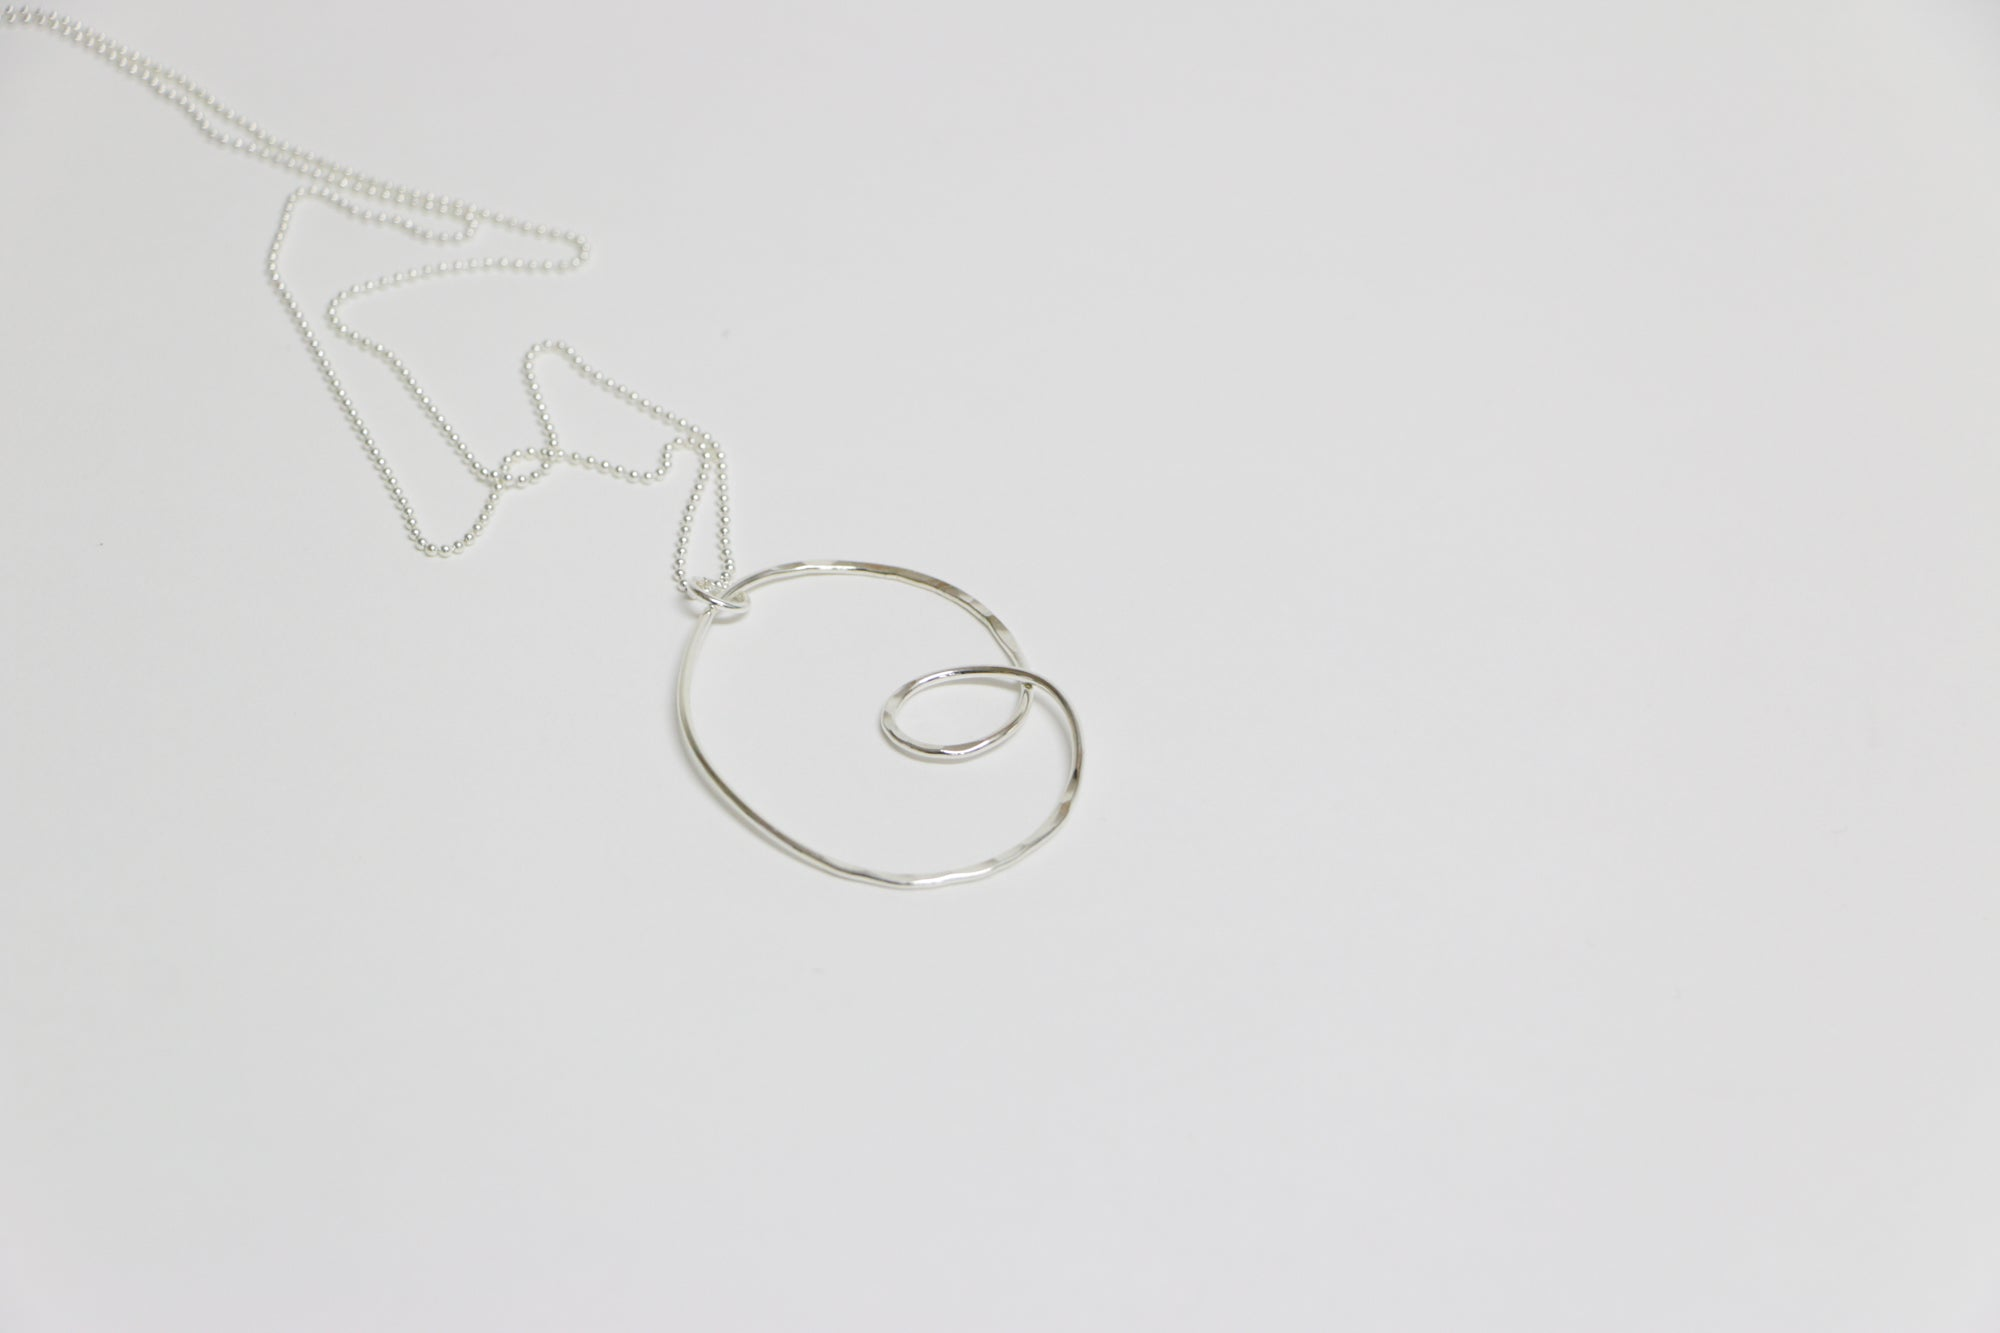 Loop Pendant Necklace